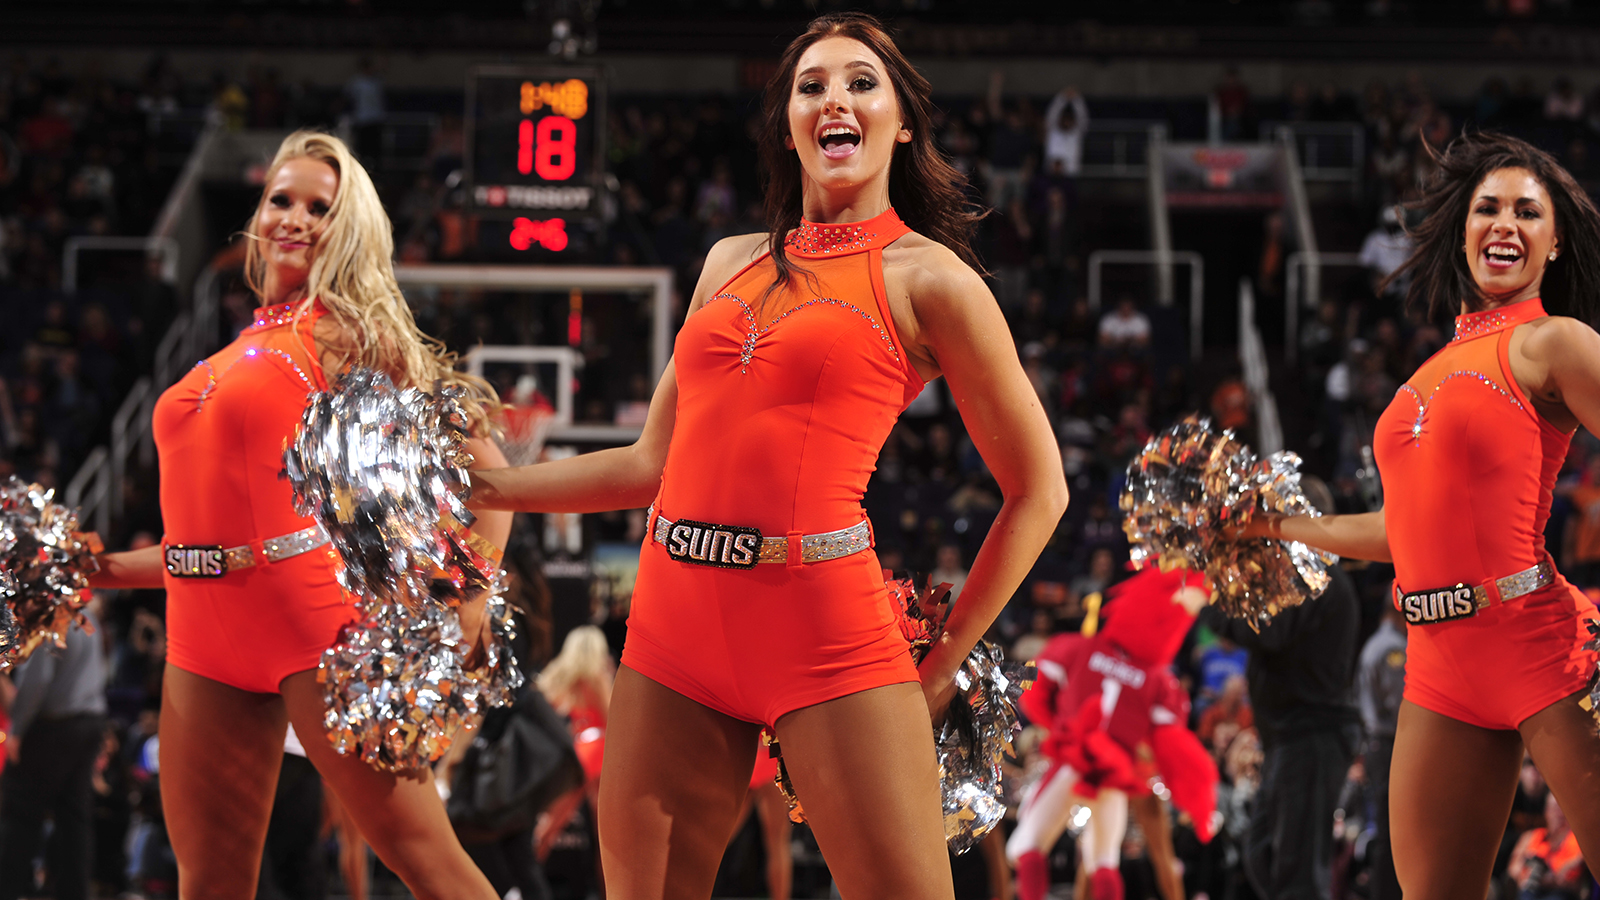 PHOENIX, AZ - DECEMBER 11: The Phoenix Suns dance team performs; against the New Orleans Pelicans on December 11, 2016 at Talking Stick Resort Arena in Phoenix, Arizona. NOTE TO USER: User expressly acknowledges and agrees that, by downloading and or using this photograph, user is consenting to the terms and conditions of the Getty Images License Agreement. Mandatory Copyright Notice: Copyright 2016 NBAE (Photo by Barry Gossage/NBAE via Getty Images)